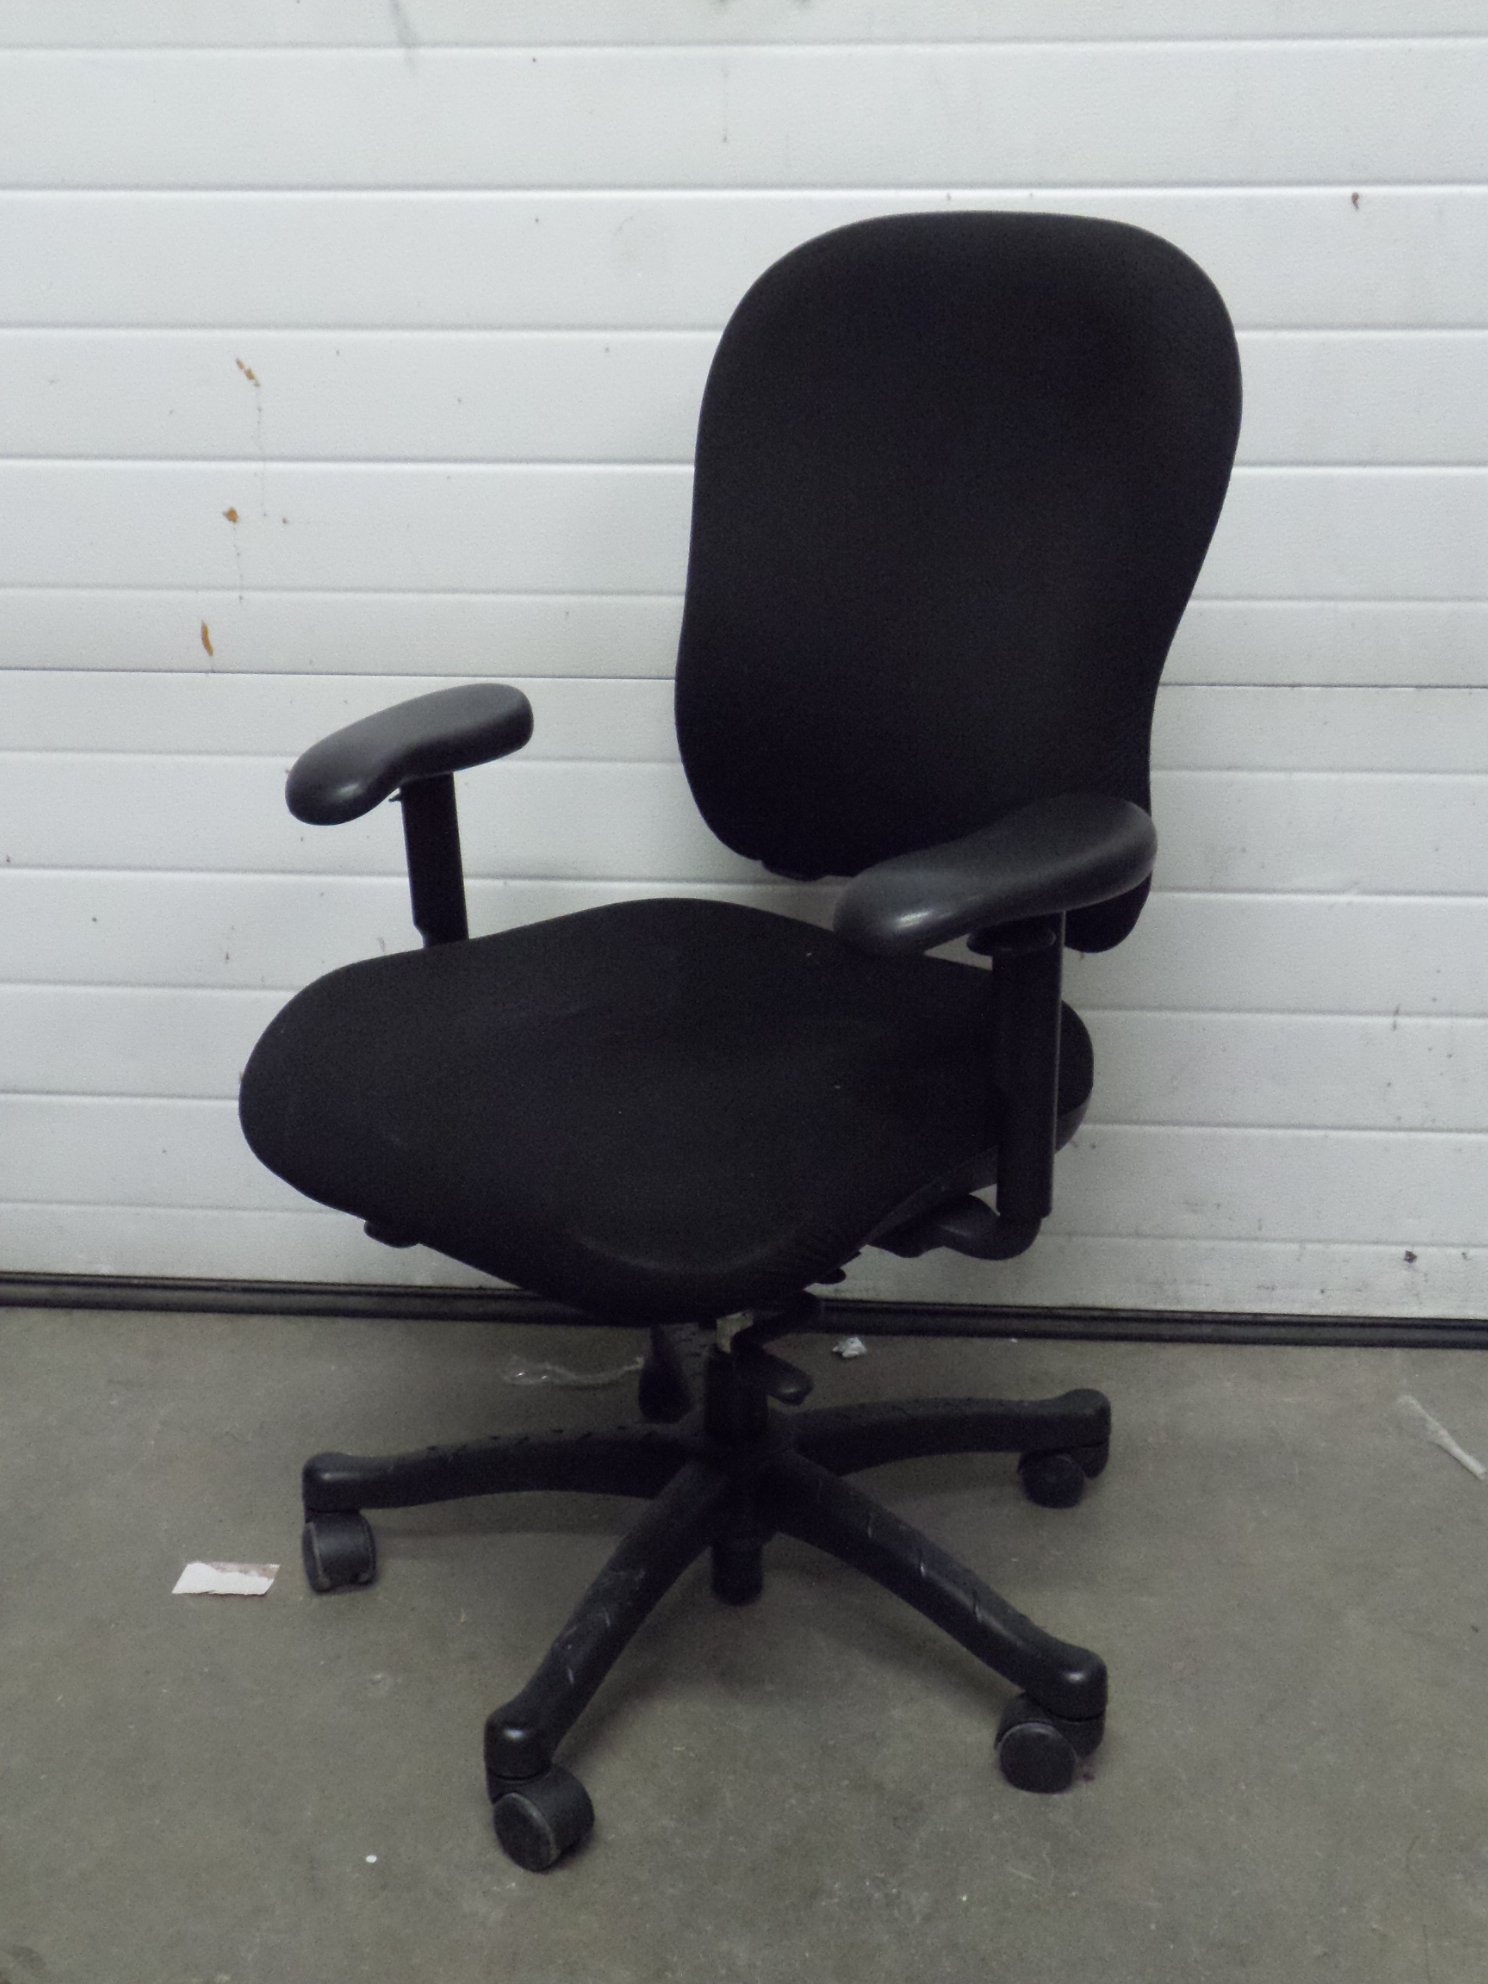 rolling chair accessories in chennai plastic chairs cape town knoll 2000 black high back adjustable task